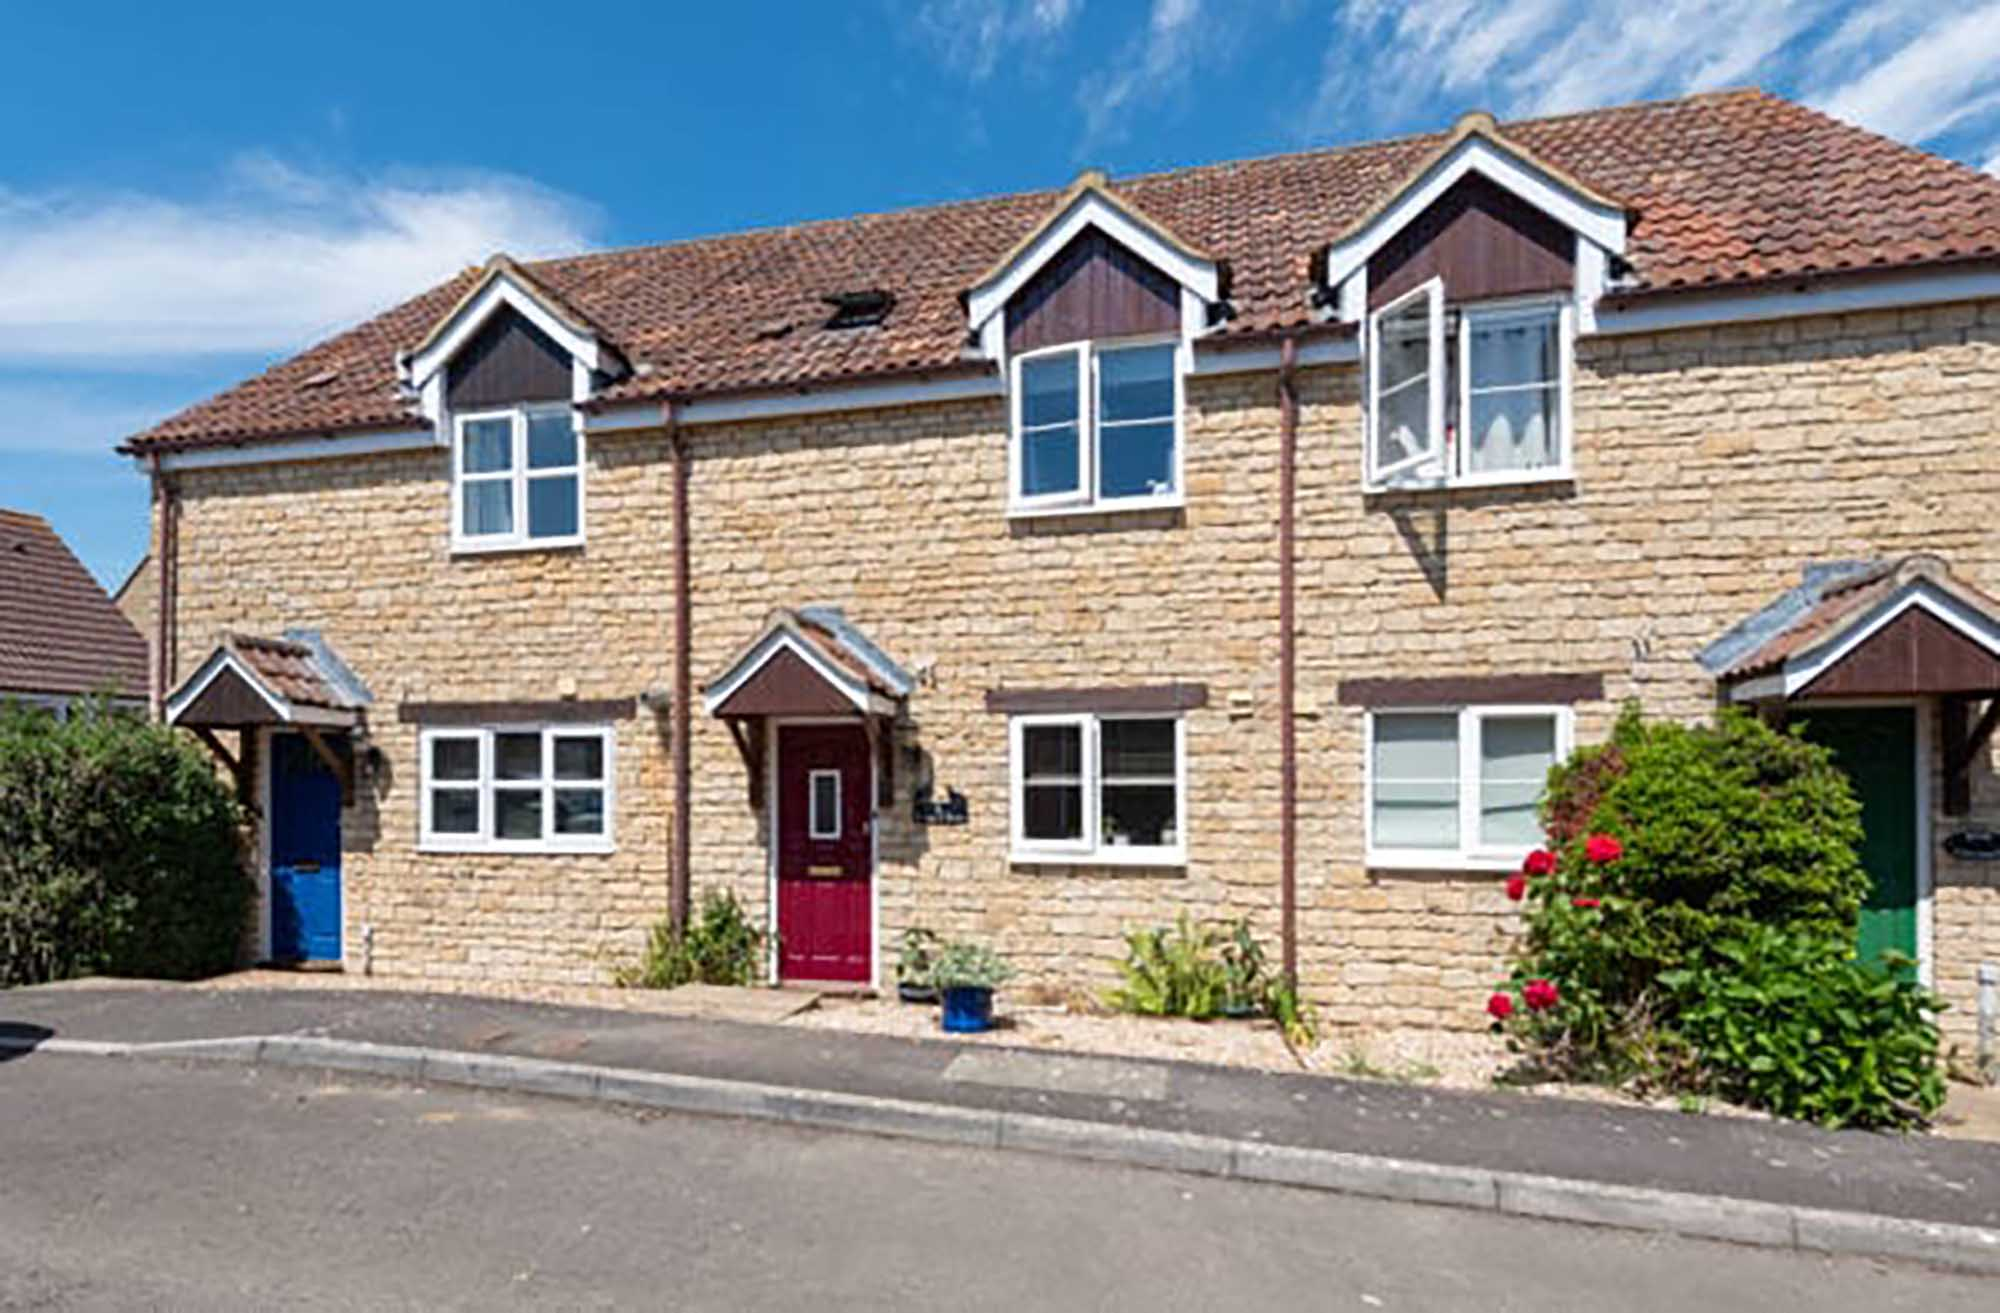 Lovely cottage style dwelling located in active Somerset village.